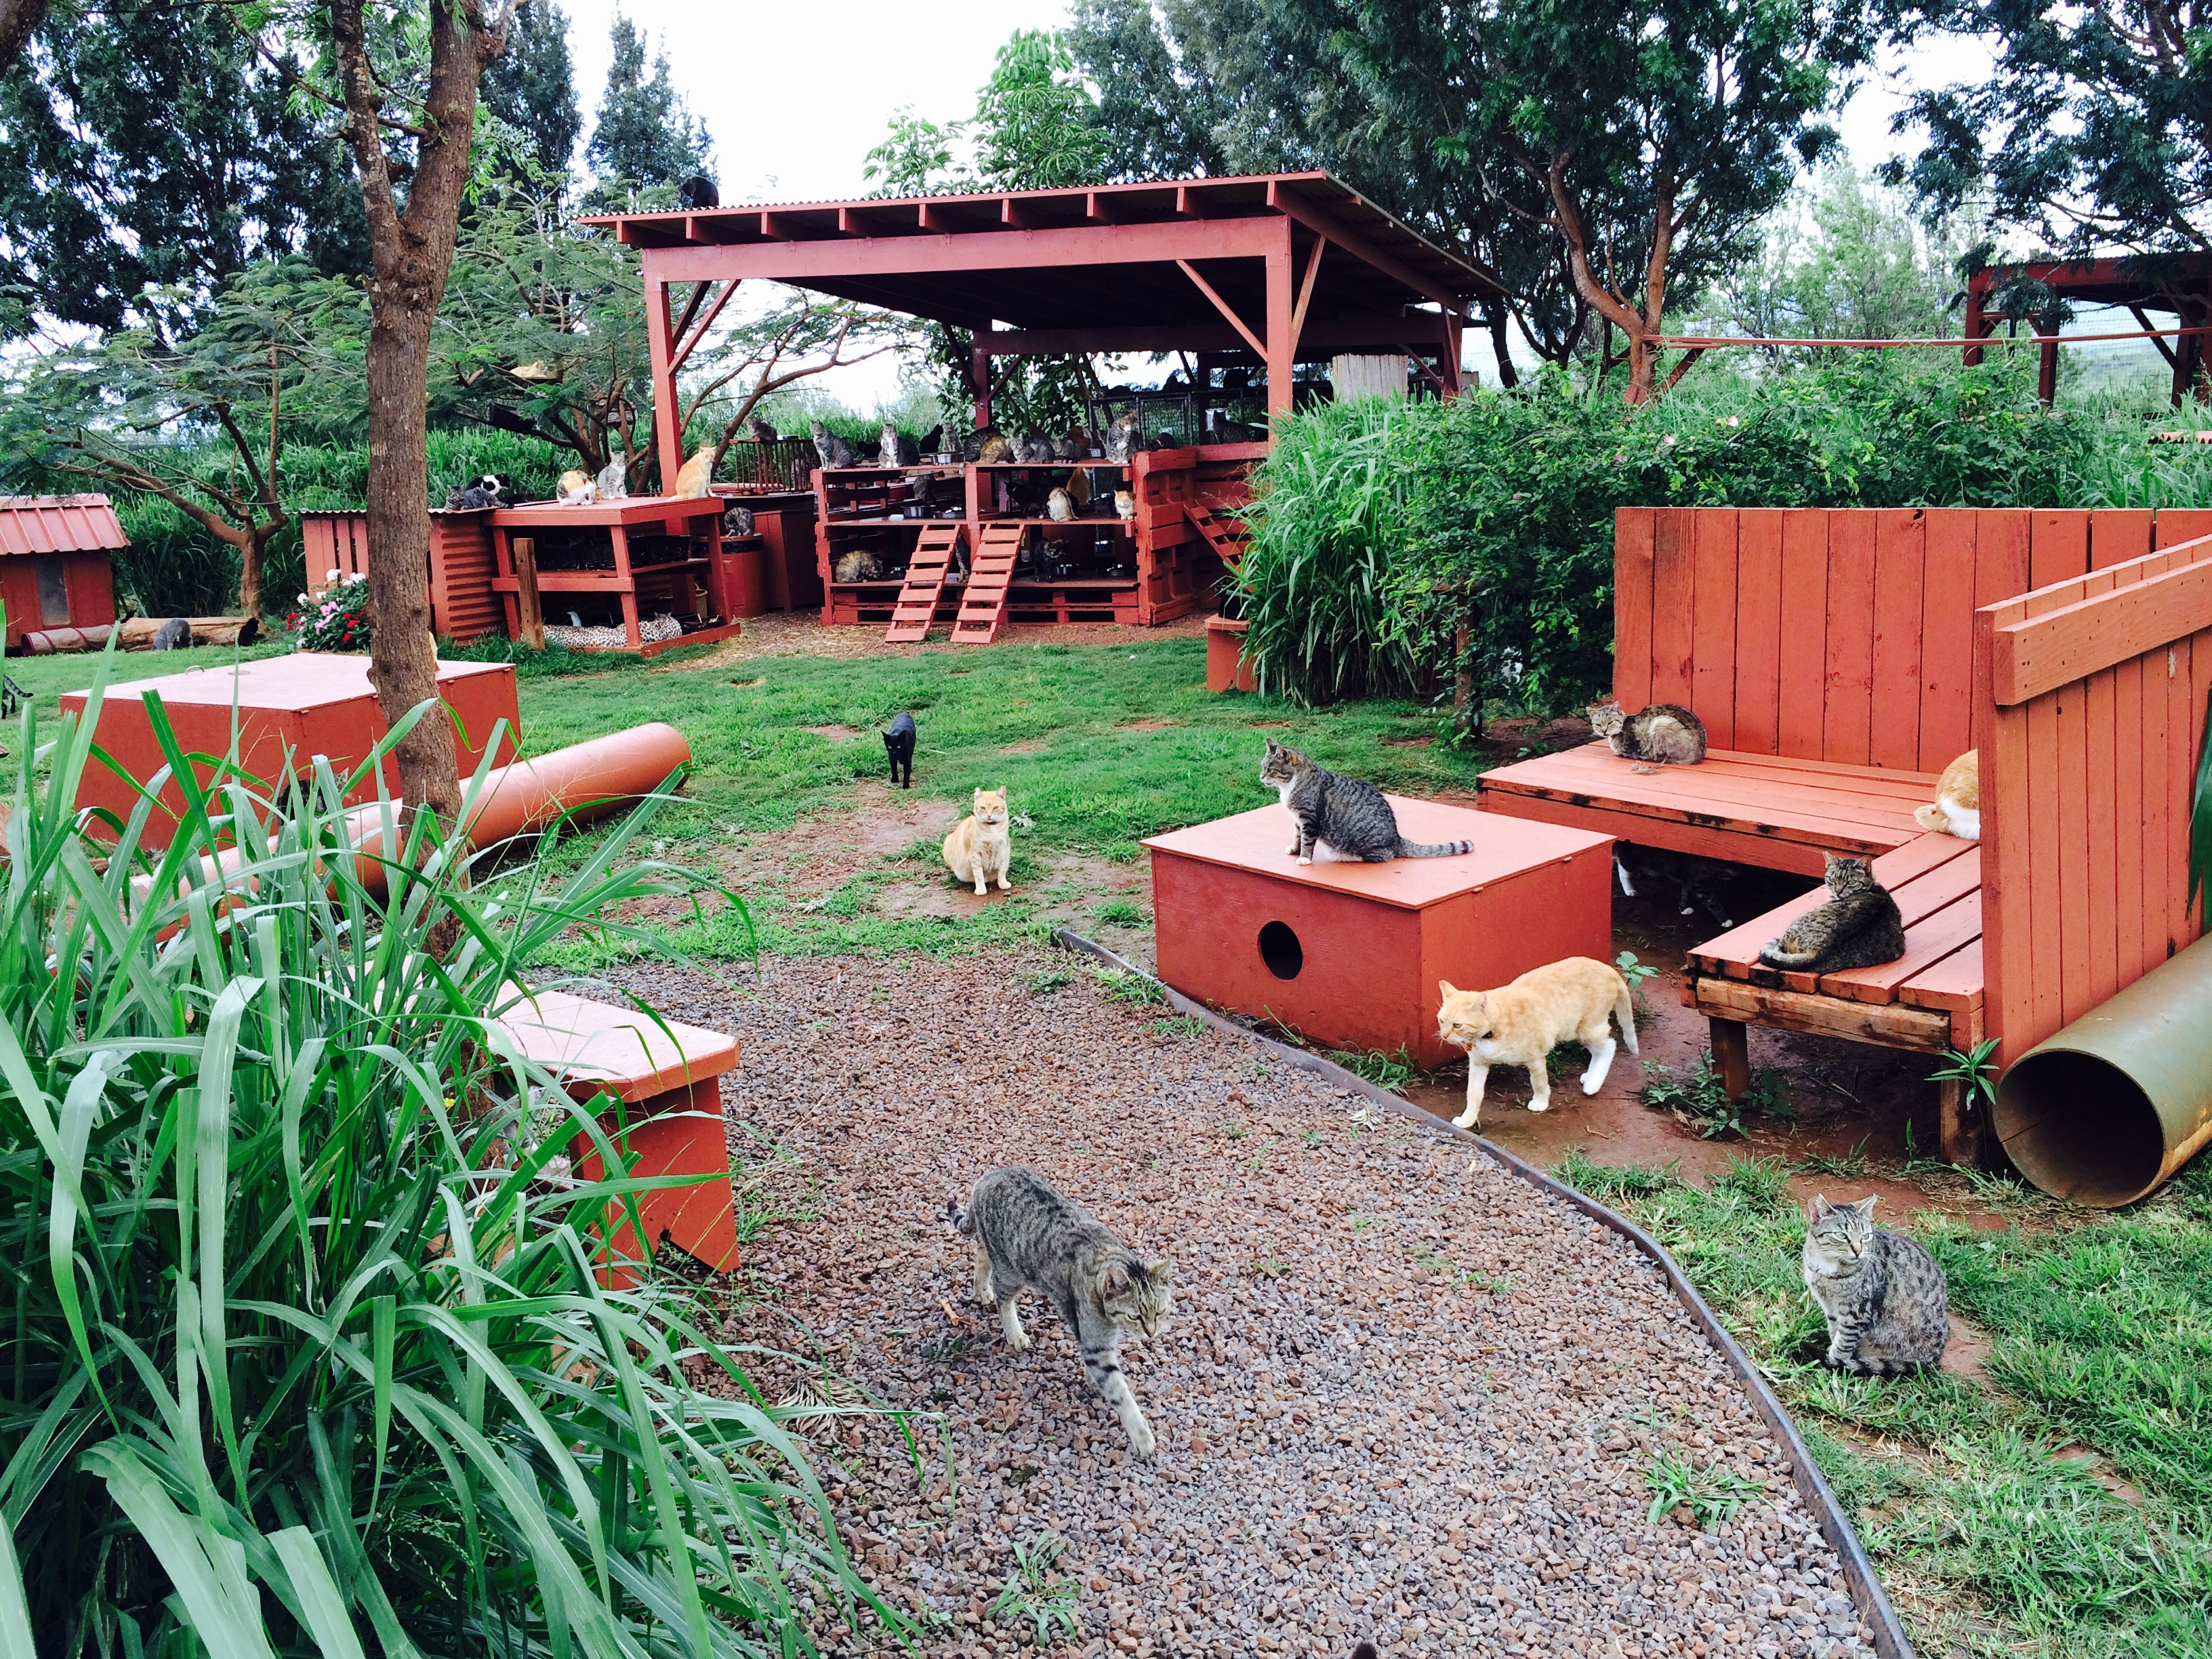 The Lāna'i Cat Sanctuary. Photo credit: Lāna'i Cat Sanctuary.